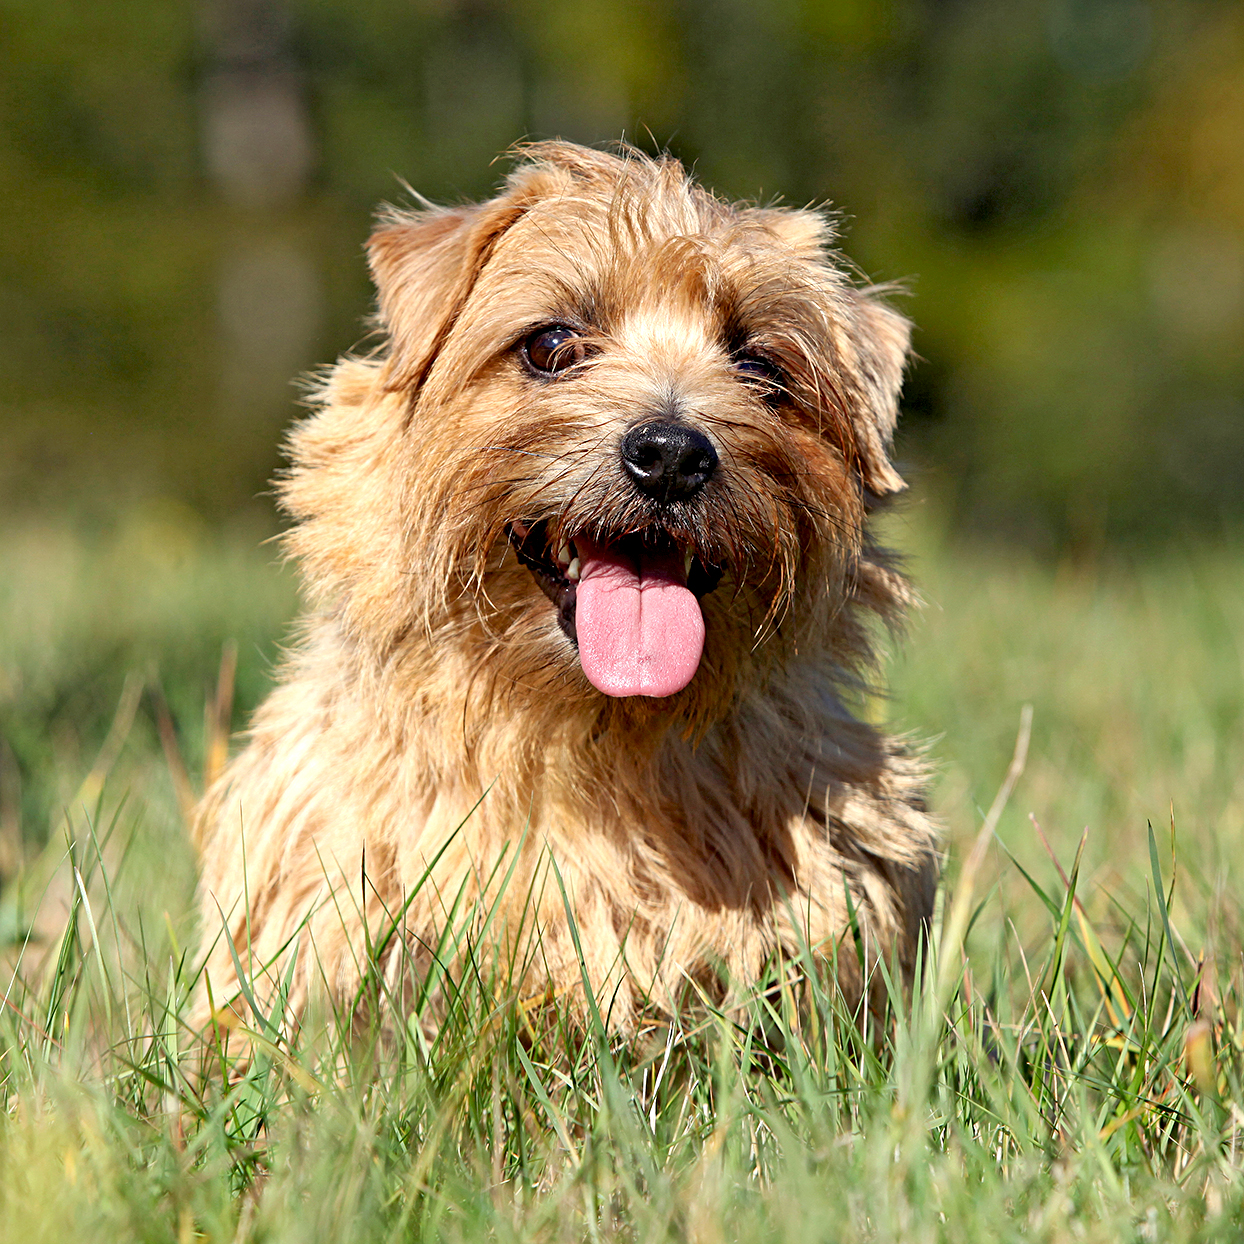 Blonde norfolk terrier happily sits in tall grass